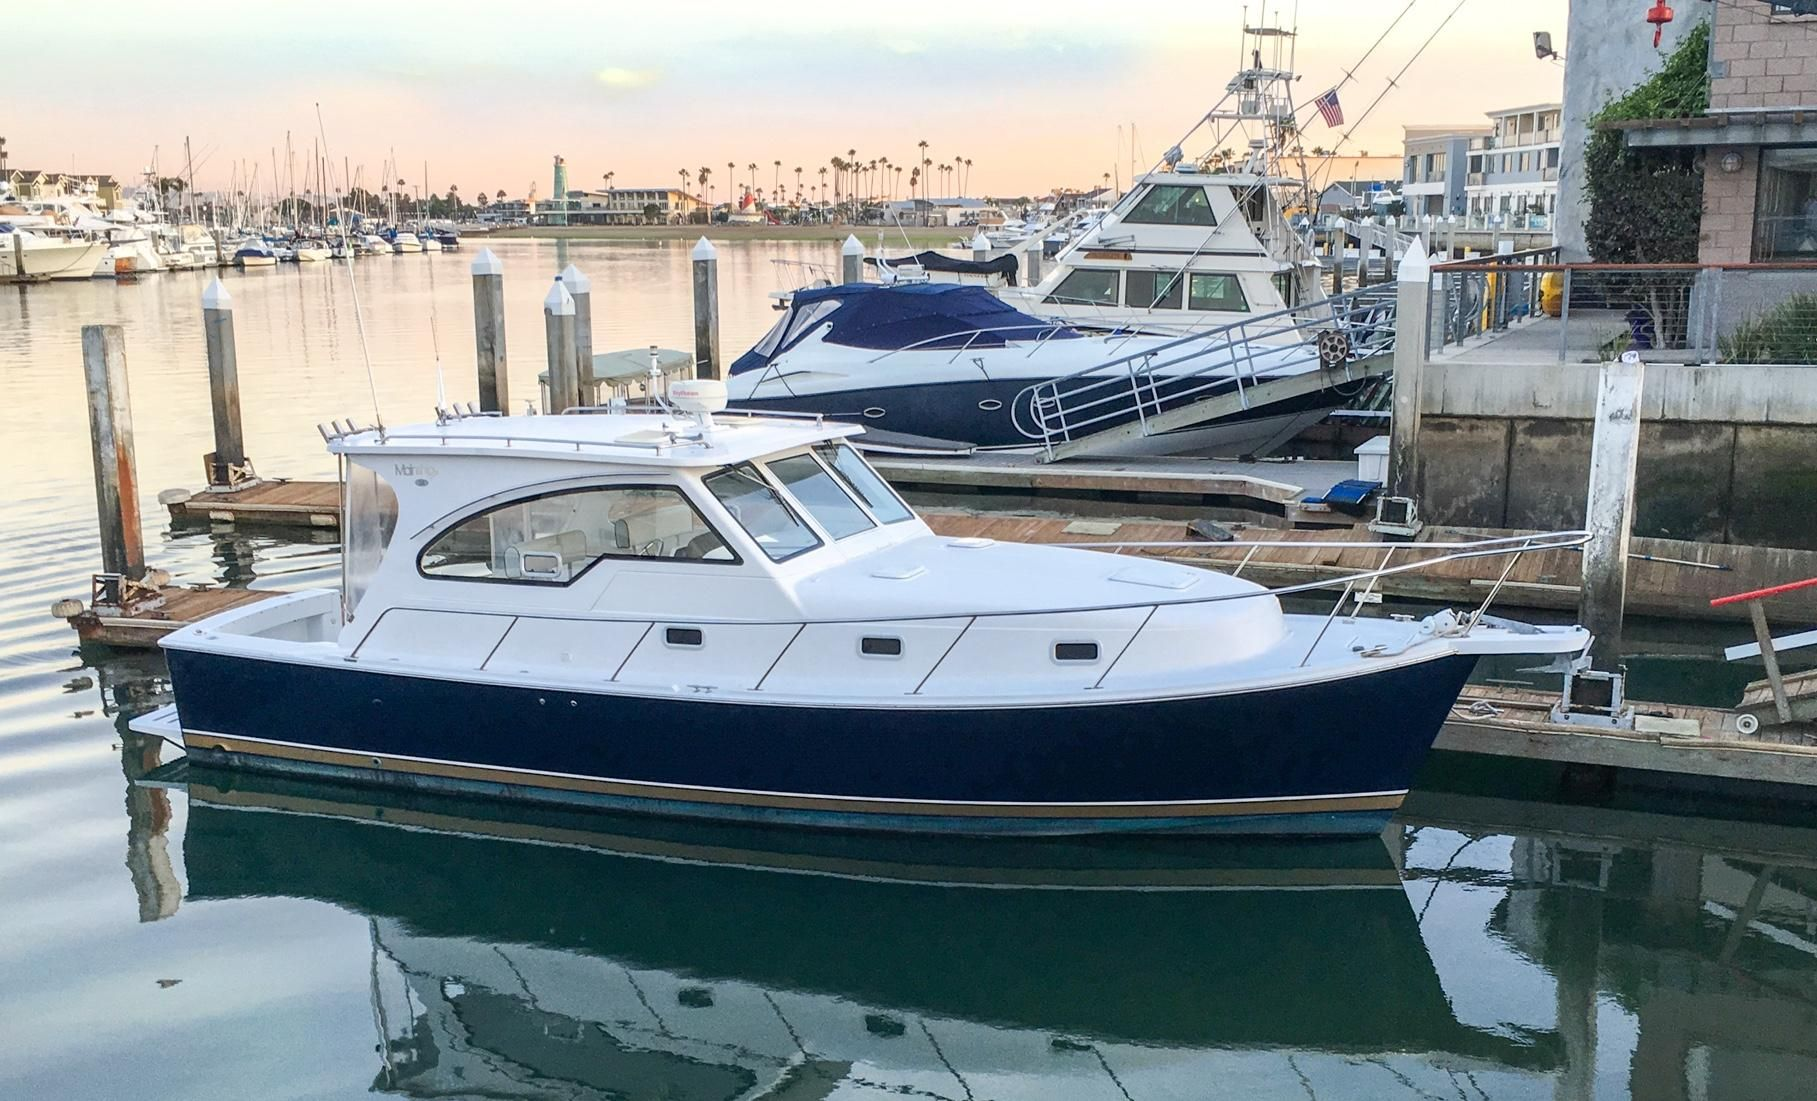 Diesel Generator For Sale >> 2001 Mainship Pilot 34 Power Boat For Sale - www ...